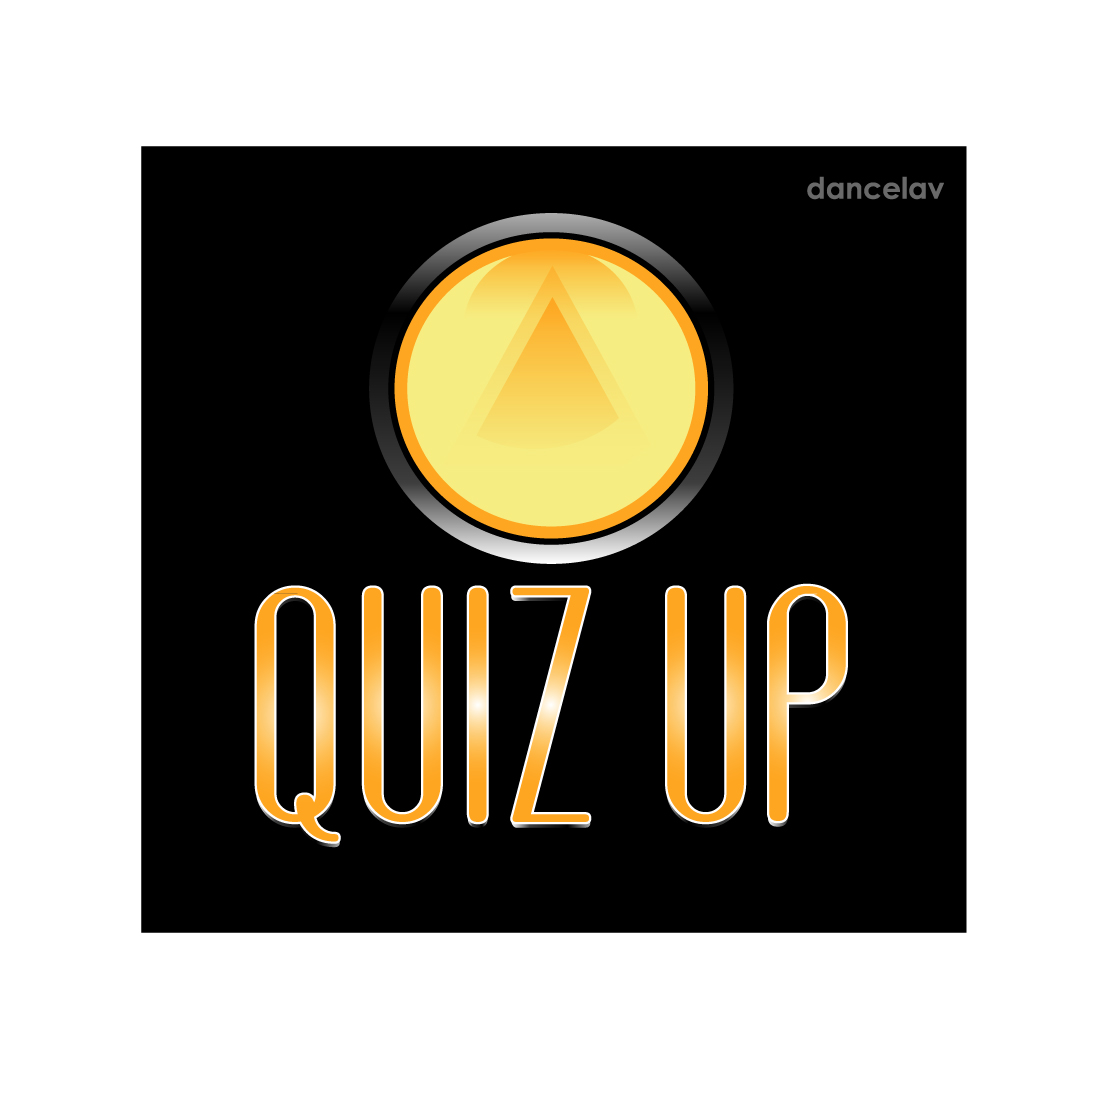 Logo Design by Dan Cristian - Entry No. 57 in the Logo Design Contest Logo Design for QuizUp app.